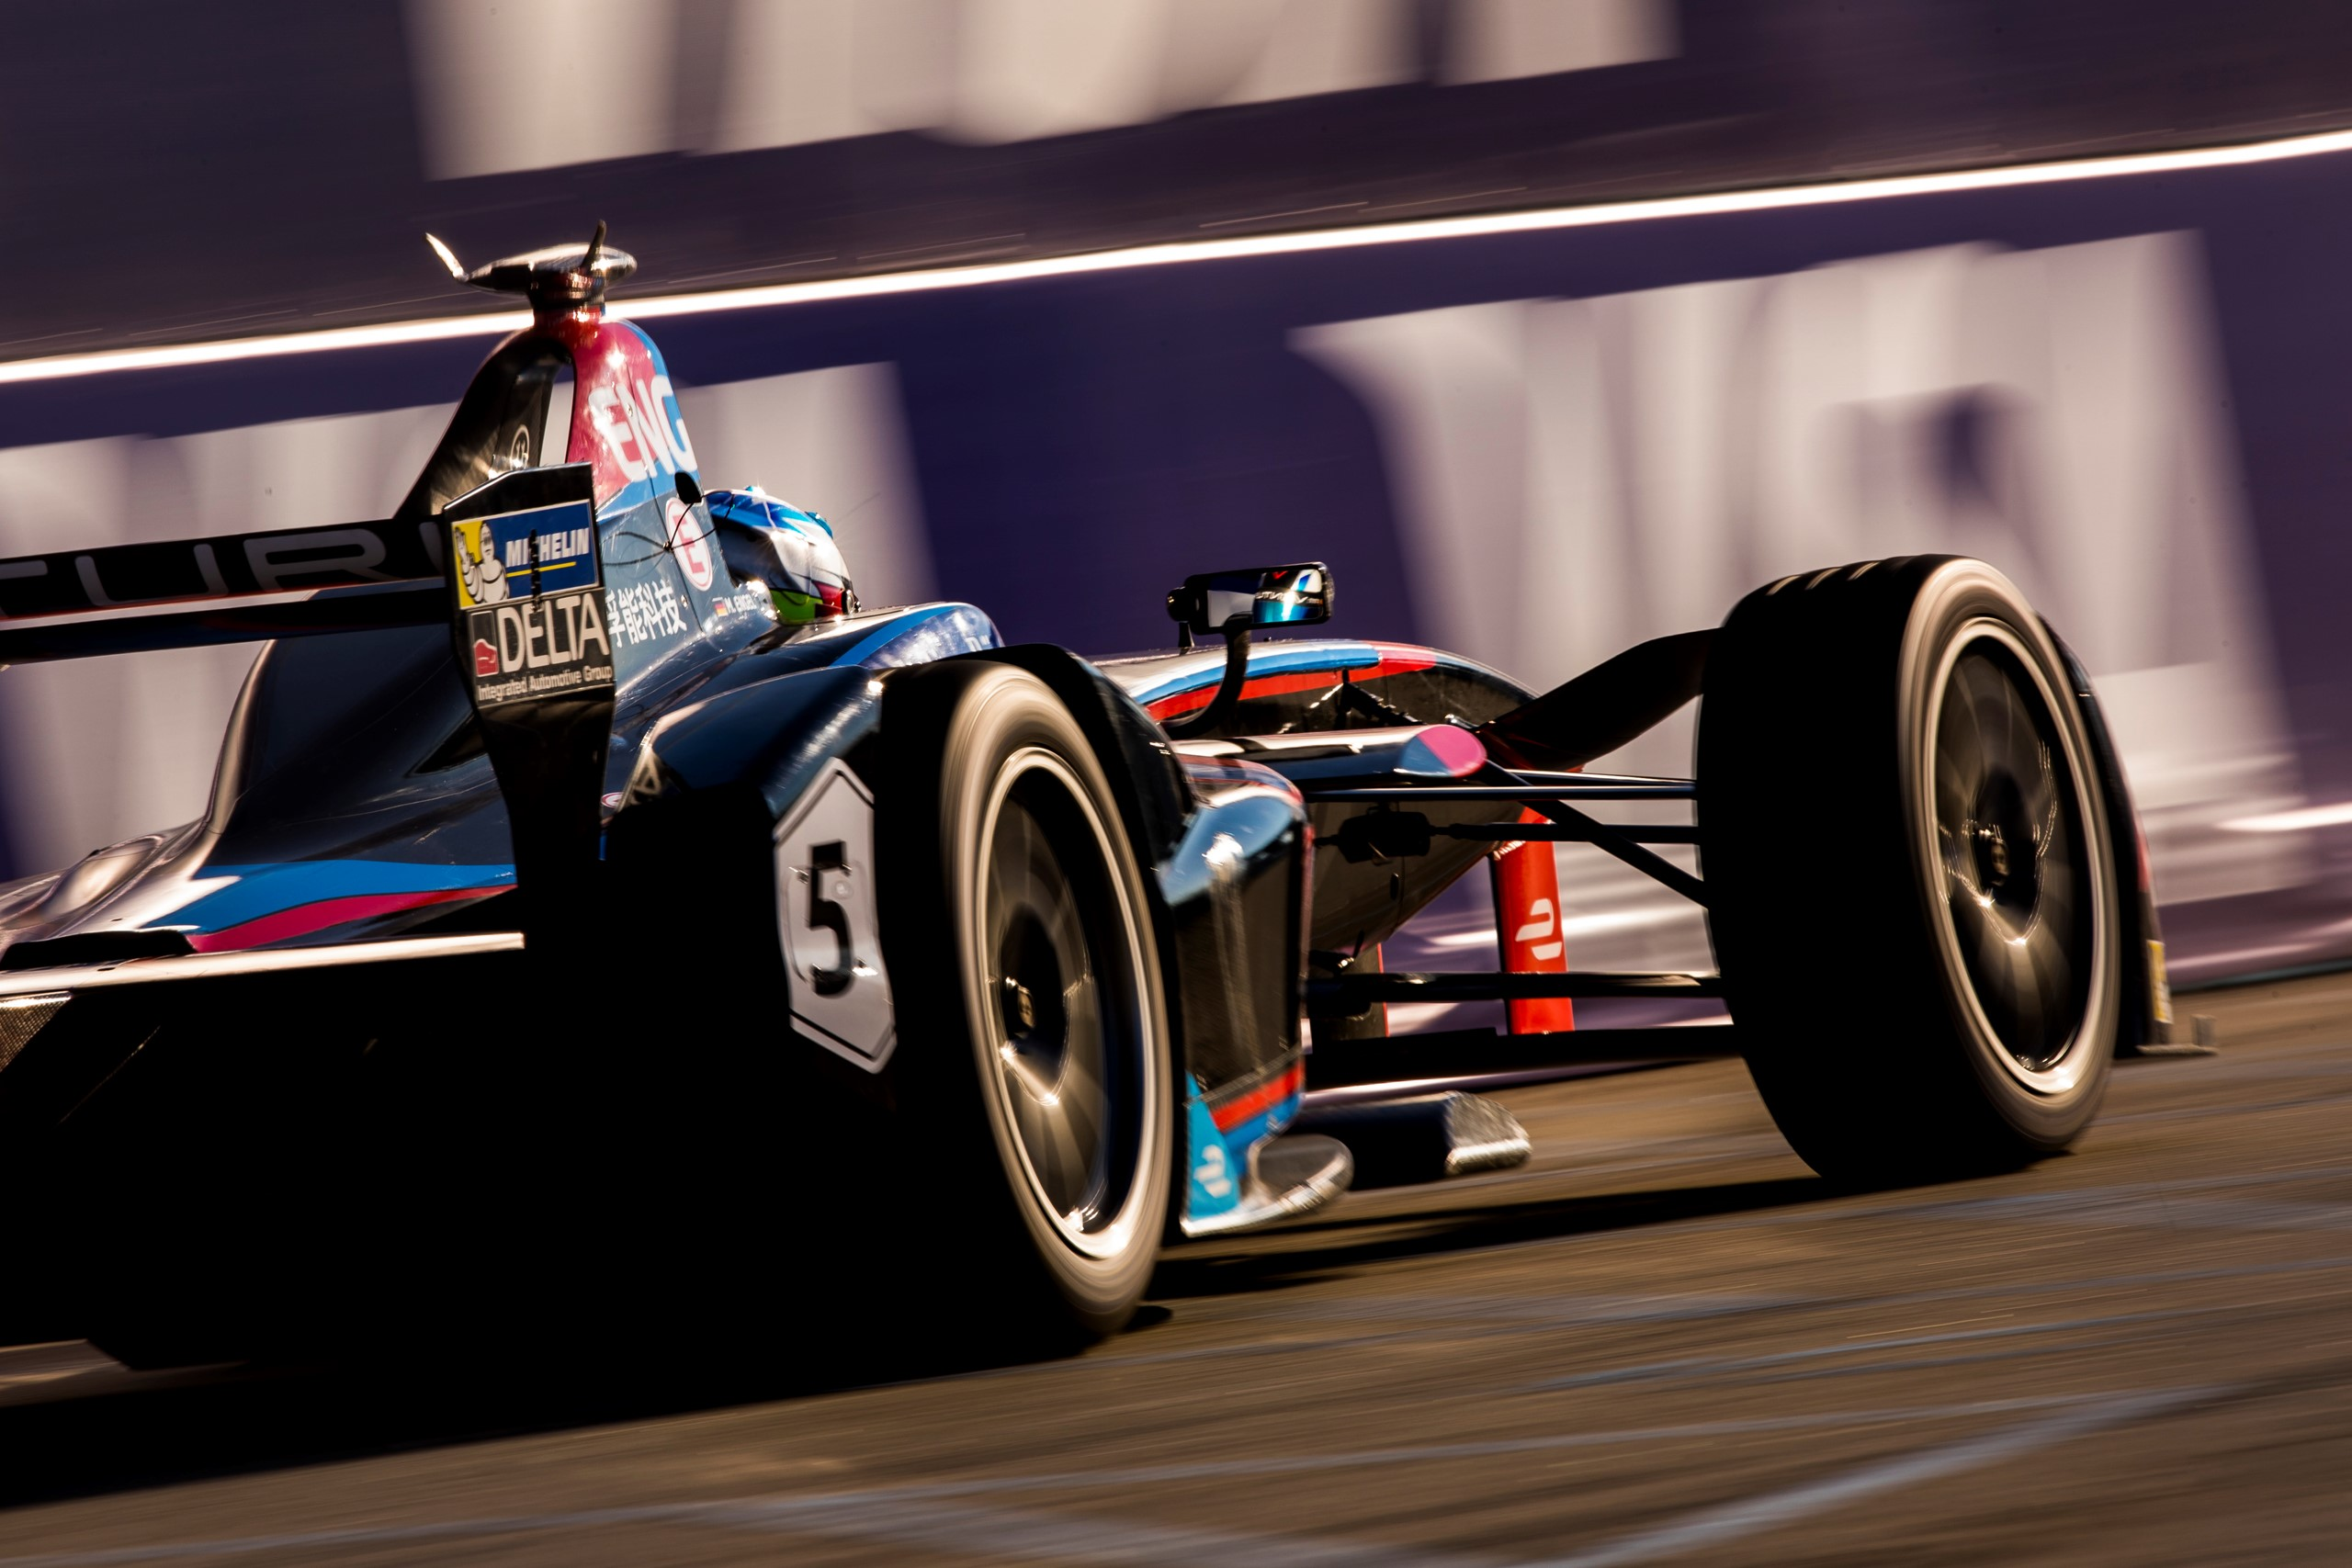 Formula E: Motor race on a peaceful Sunday in your city